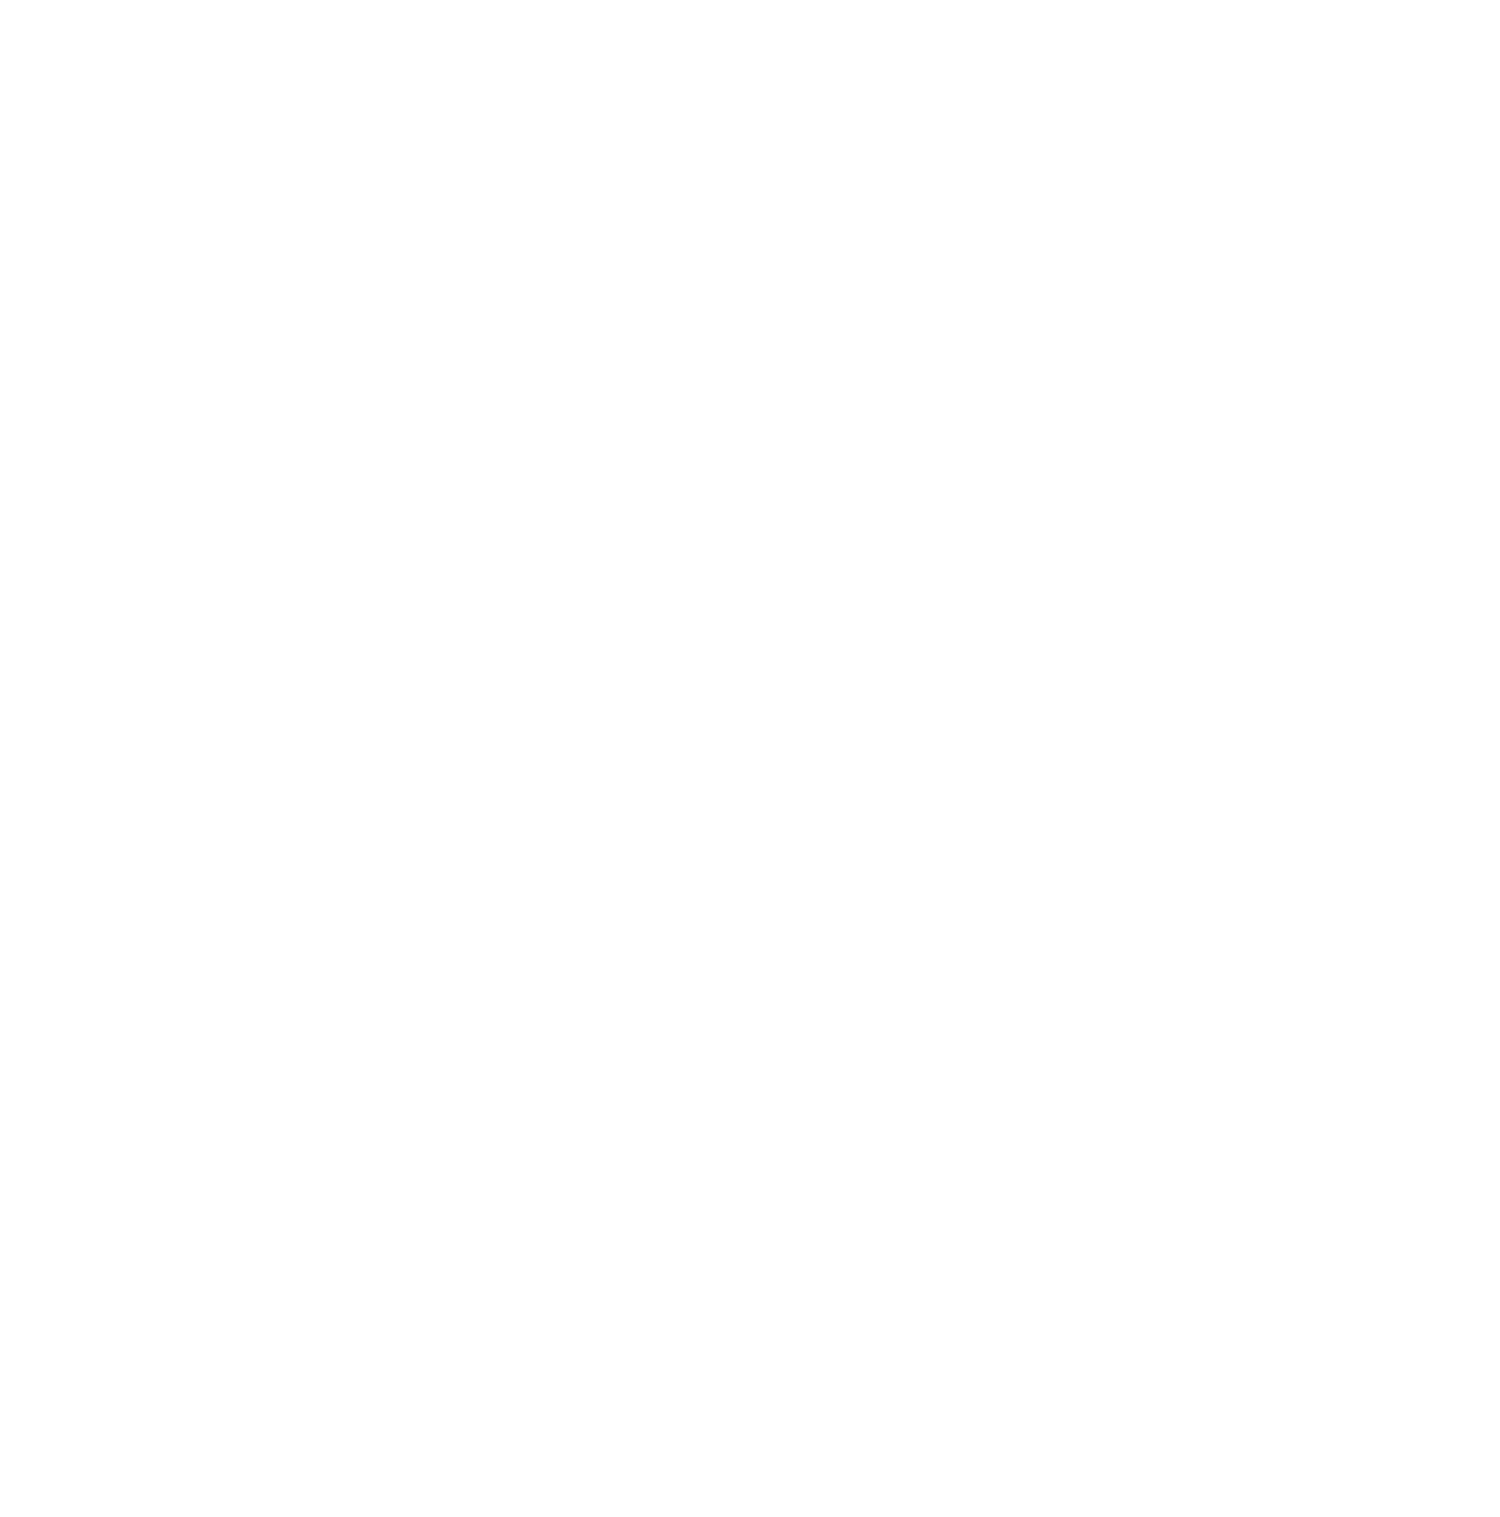 Moose Jaw Alliance Church